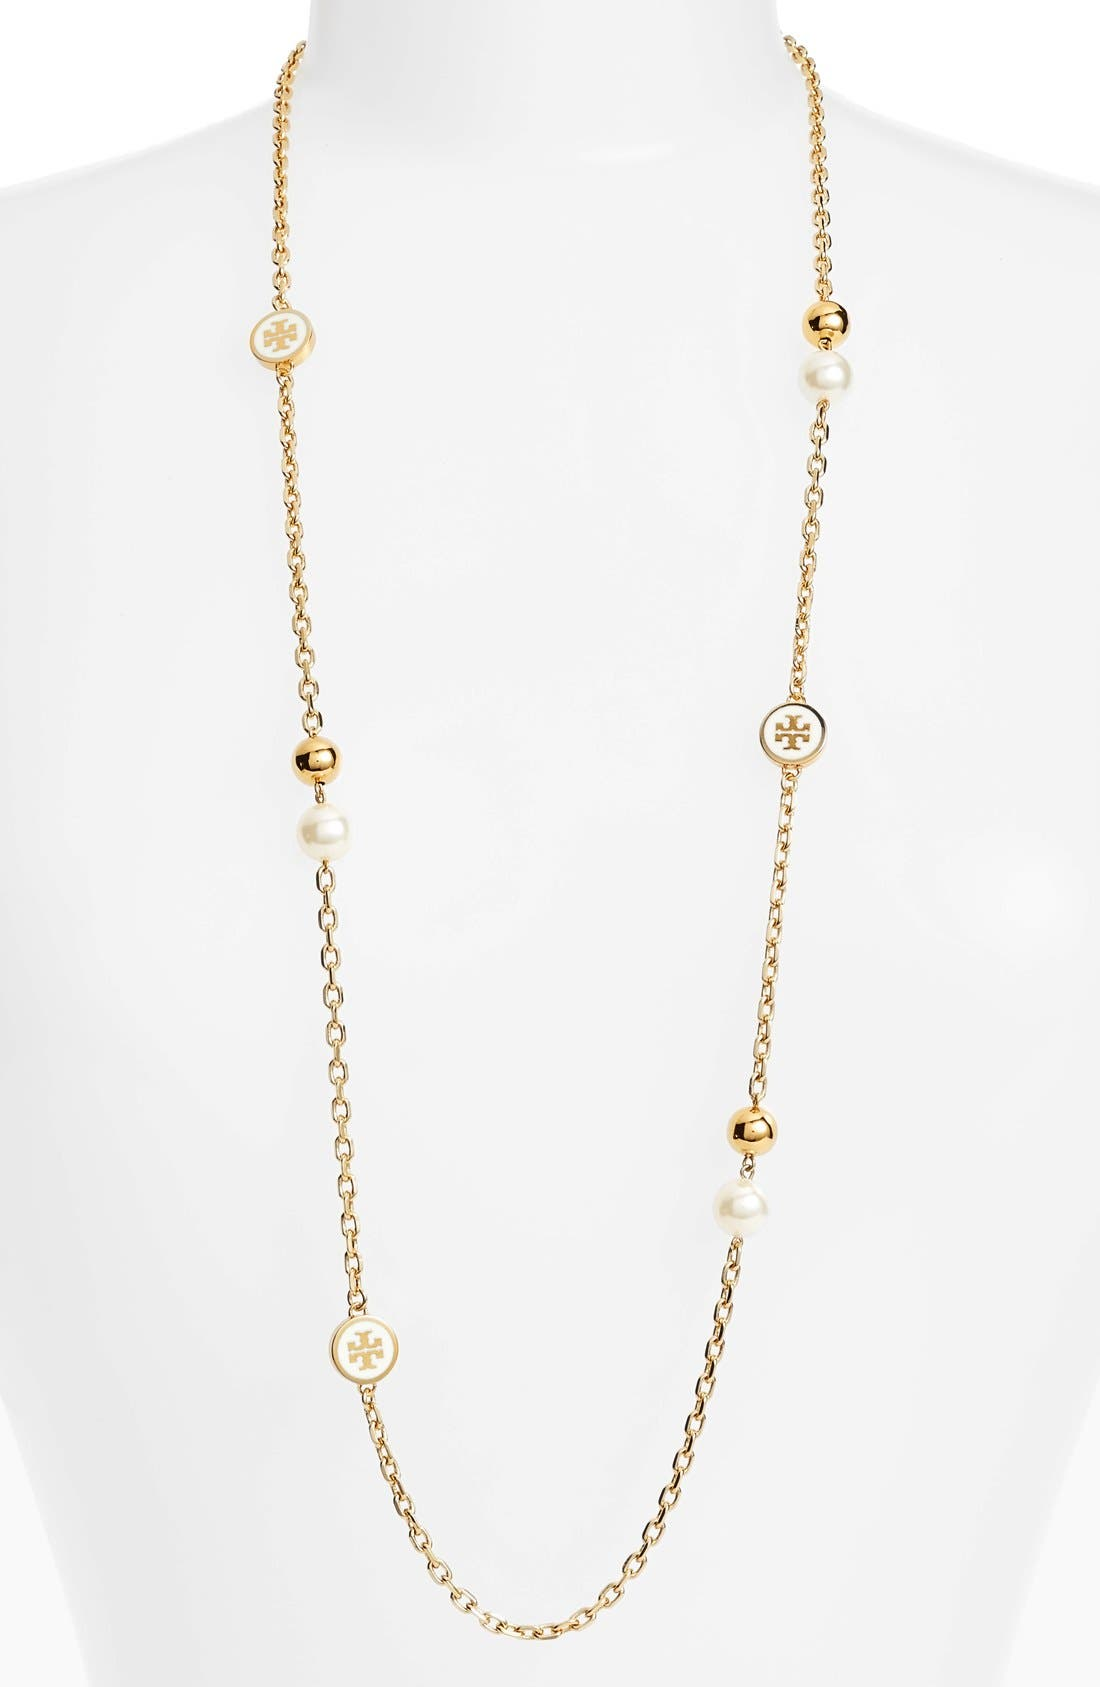 Tory Burch Logo Station Necklace